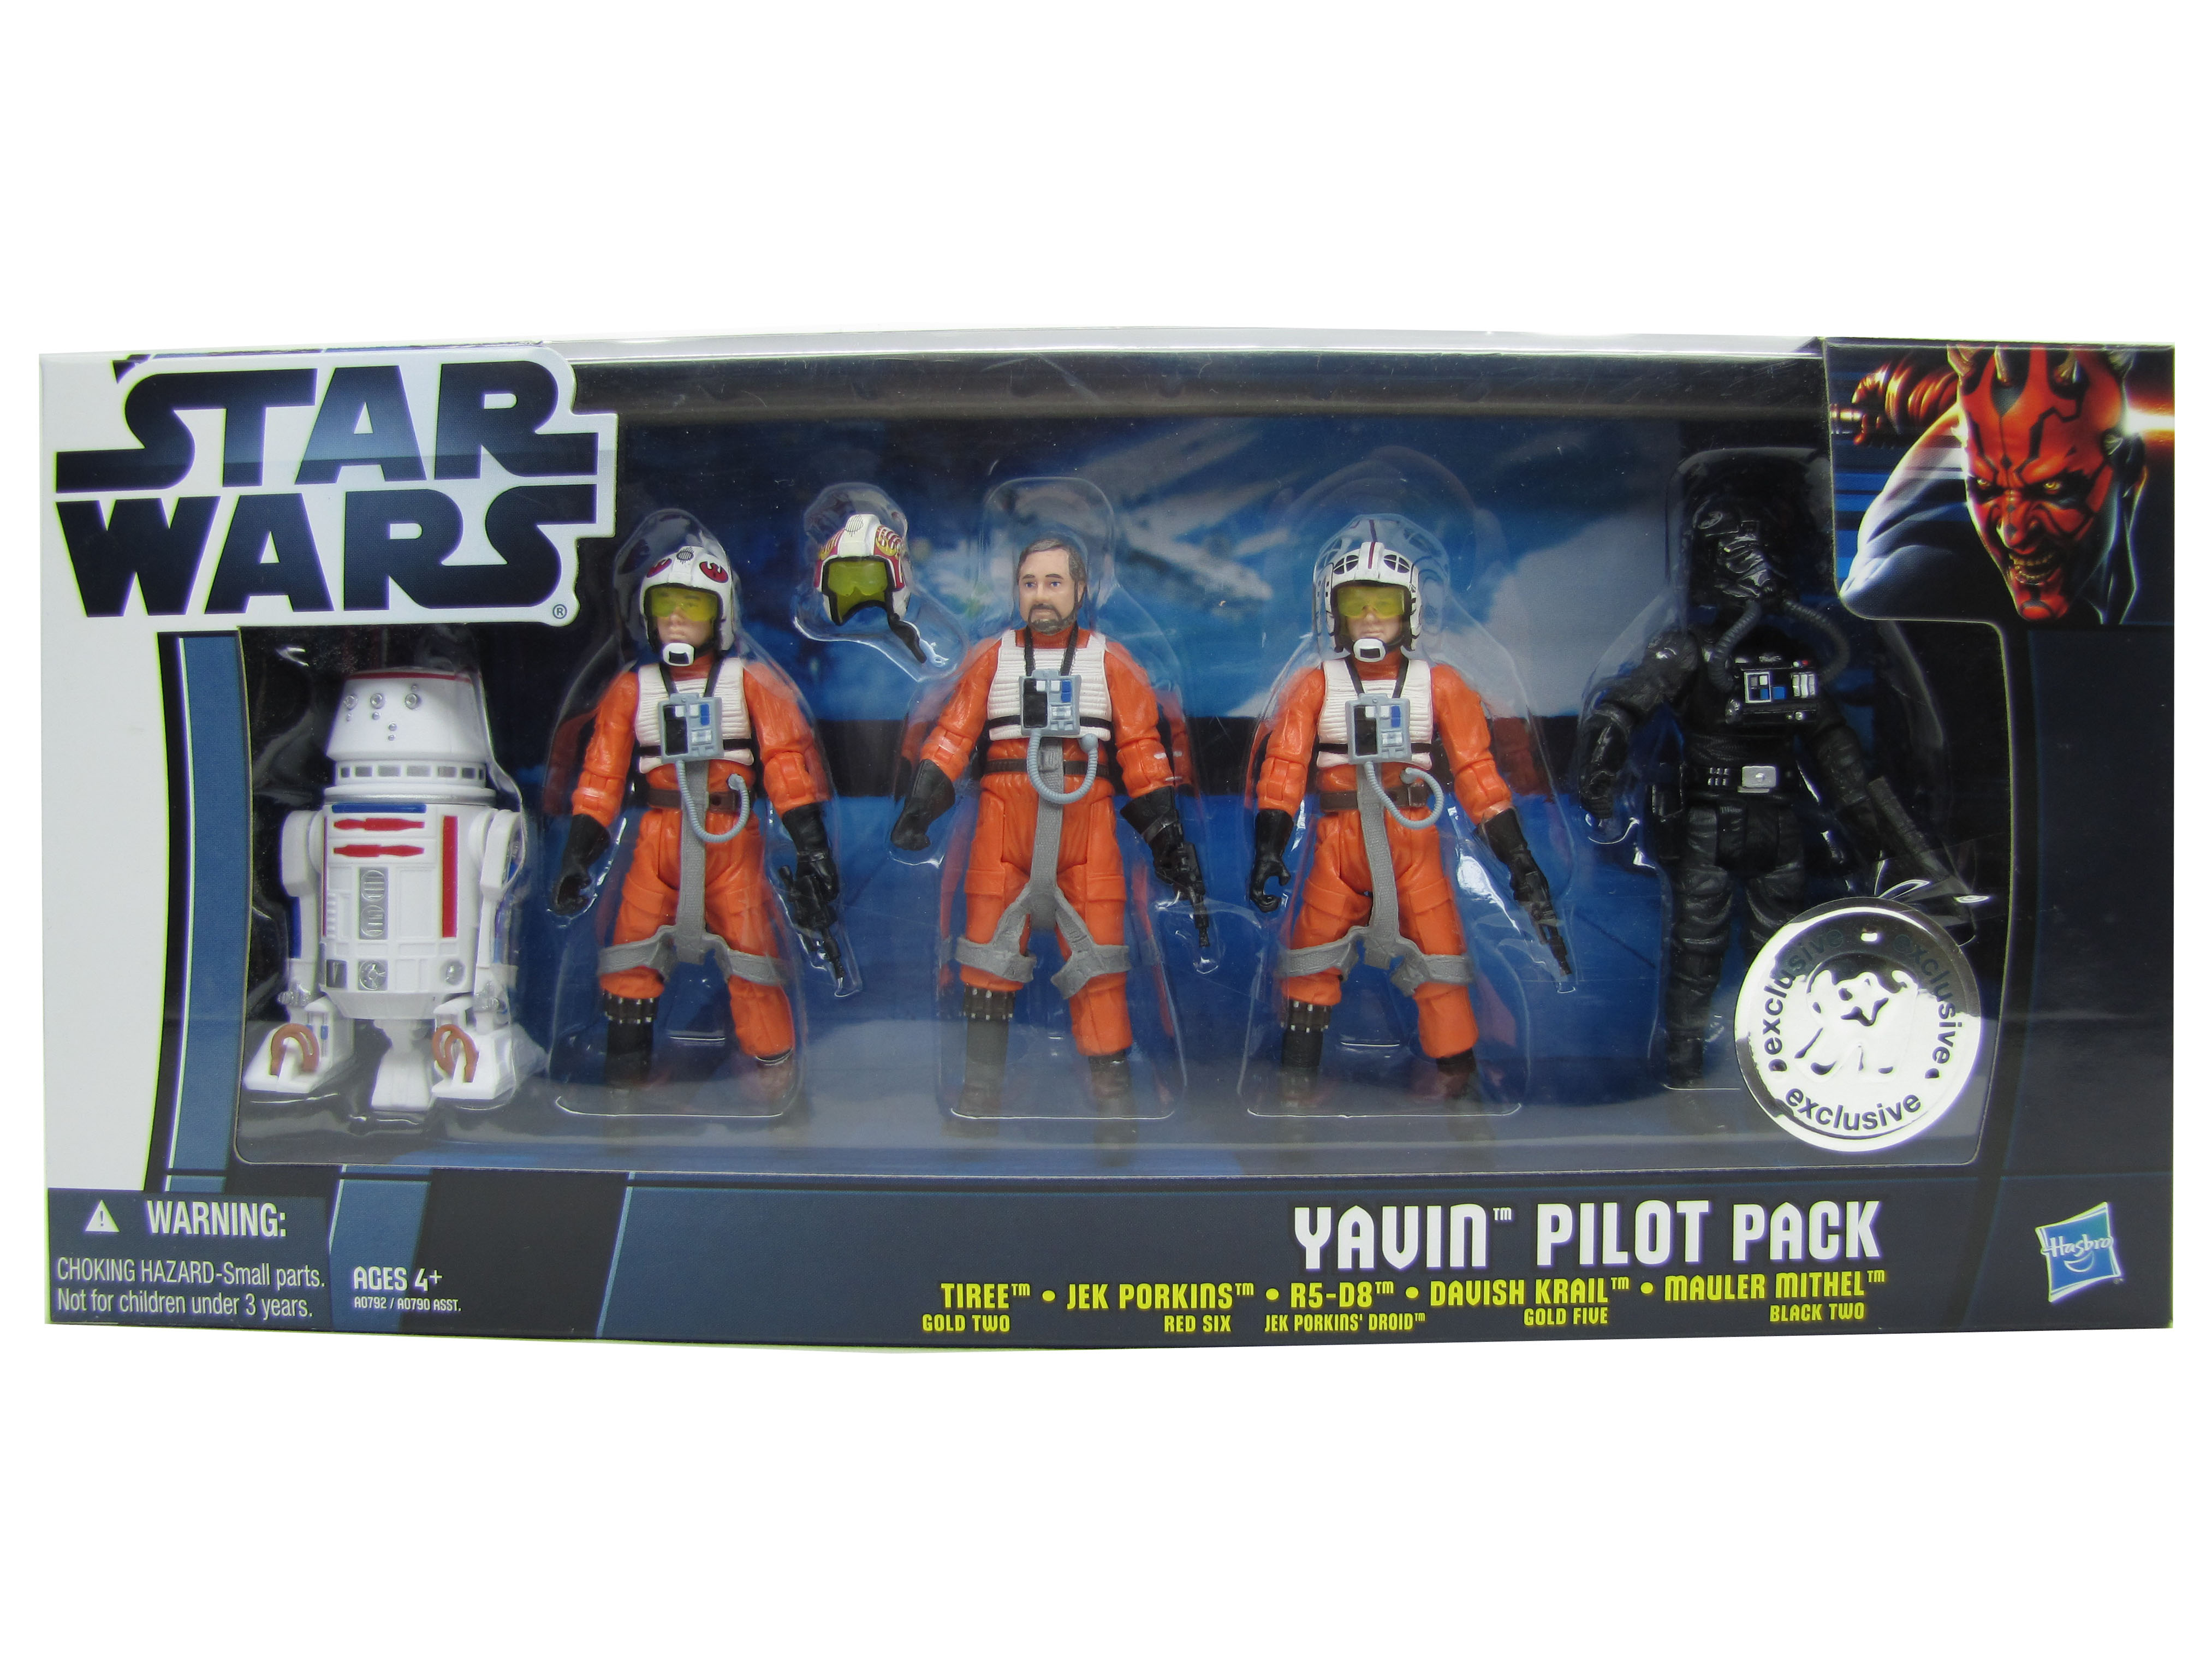 2012 Star Wars Movie Heroes YAVIN PILOTS TOYSRUS BATTLE PACK